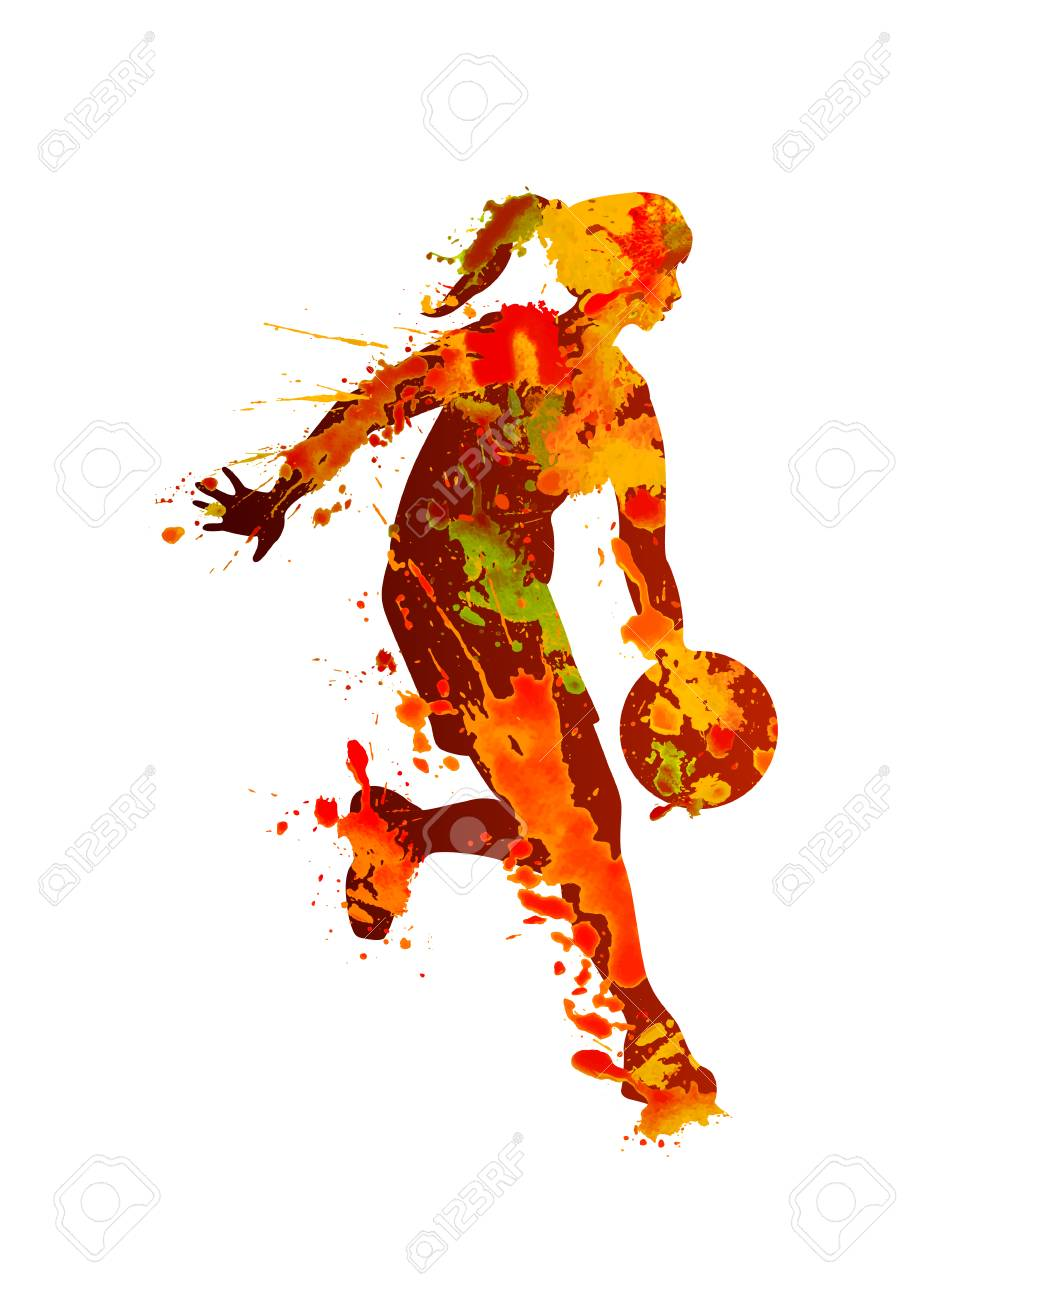 Woman basketball player. Splash watercolor paint on a white background - 86965226